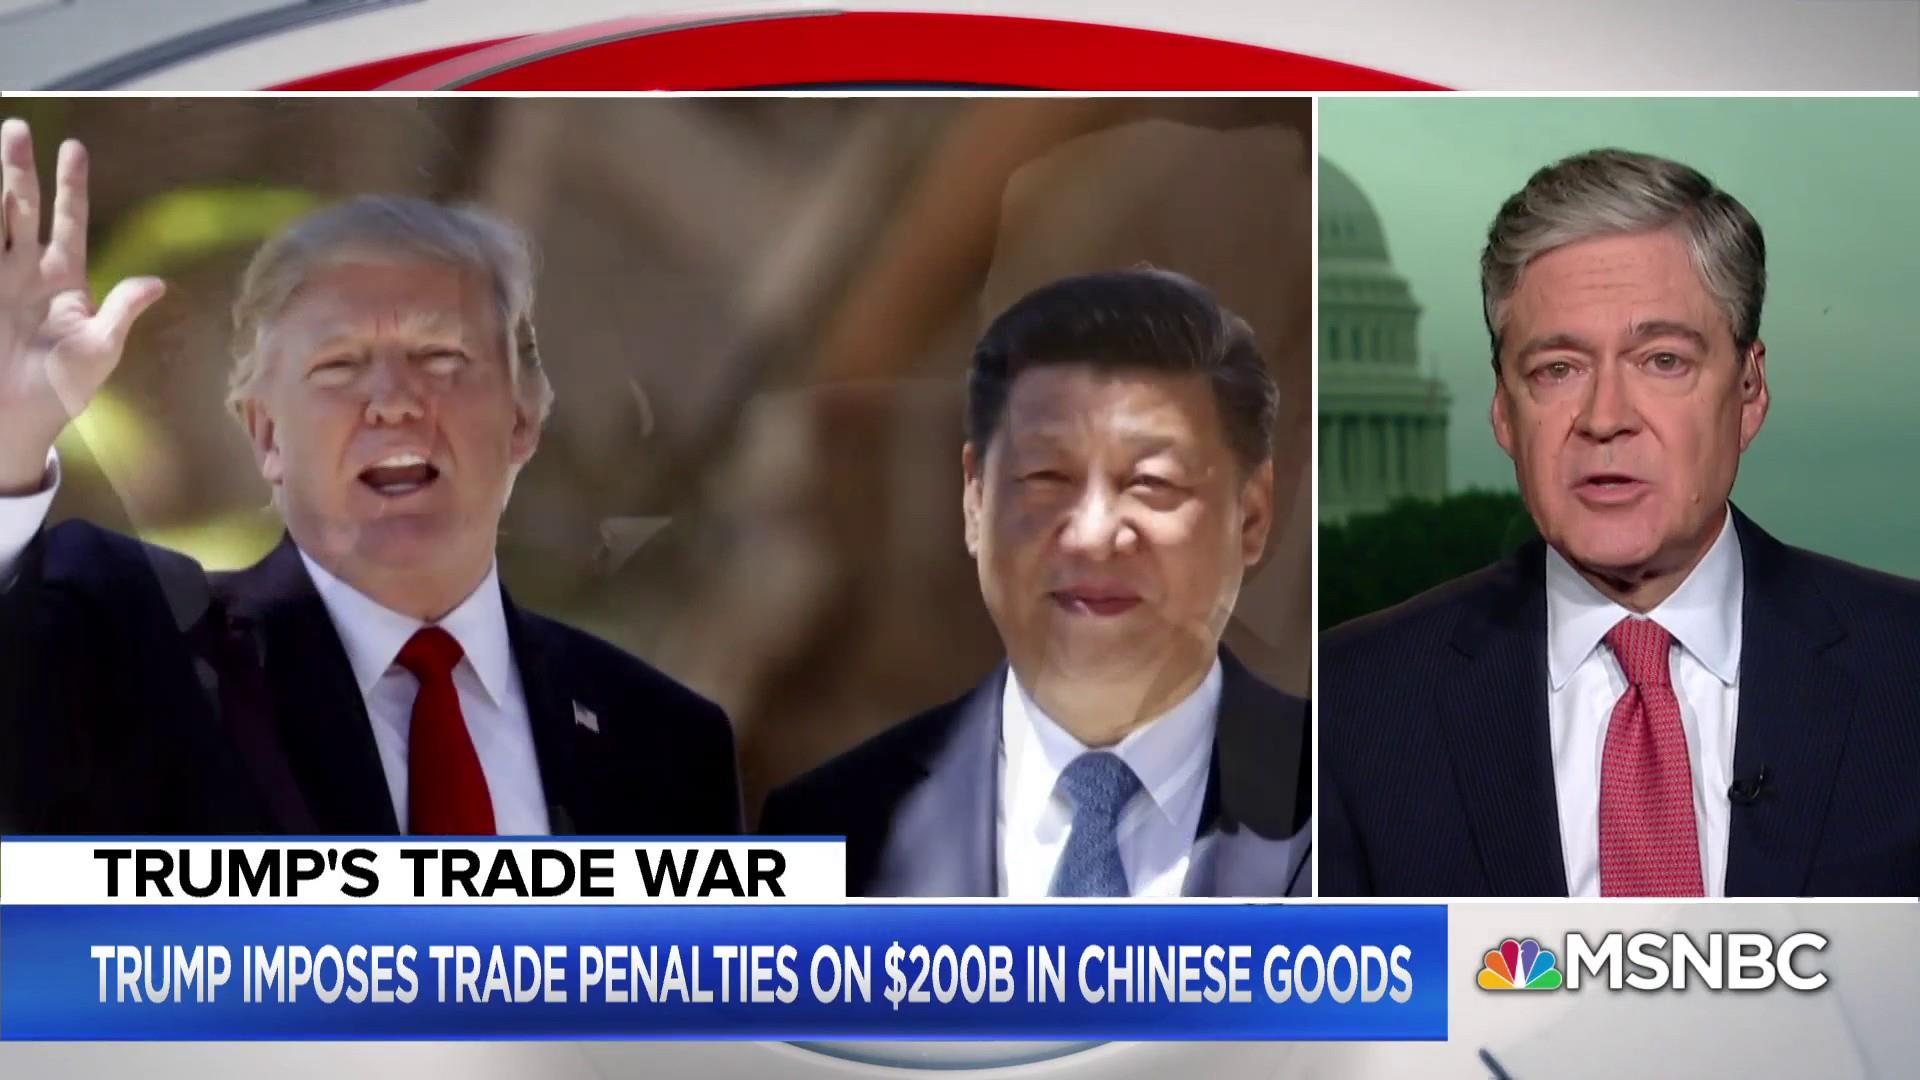 Harwood: Trade war raises the risk of inflation and recession